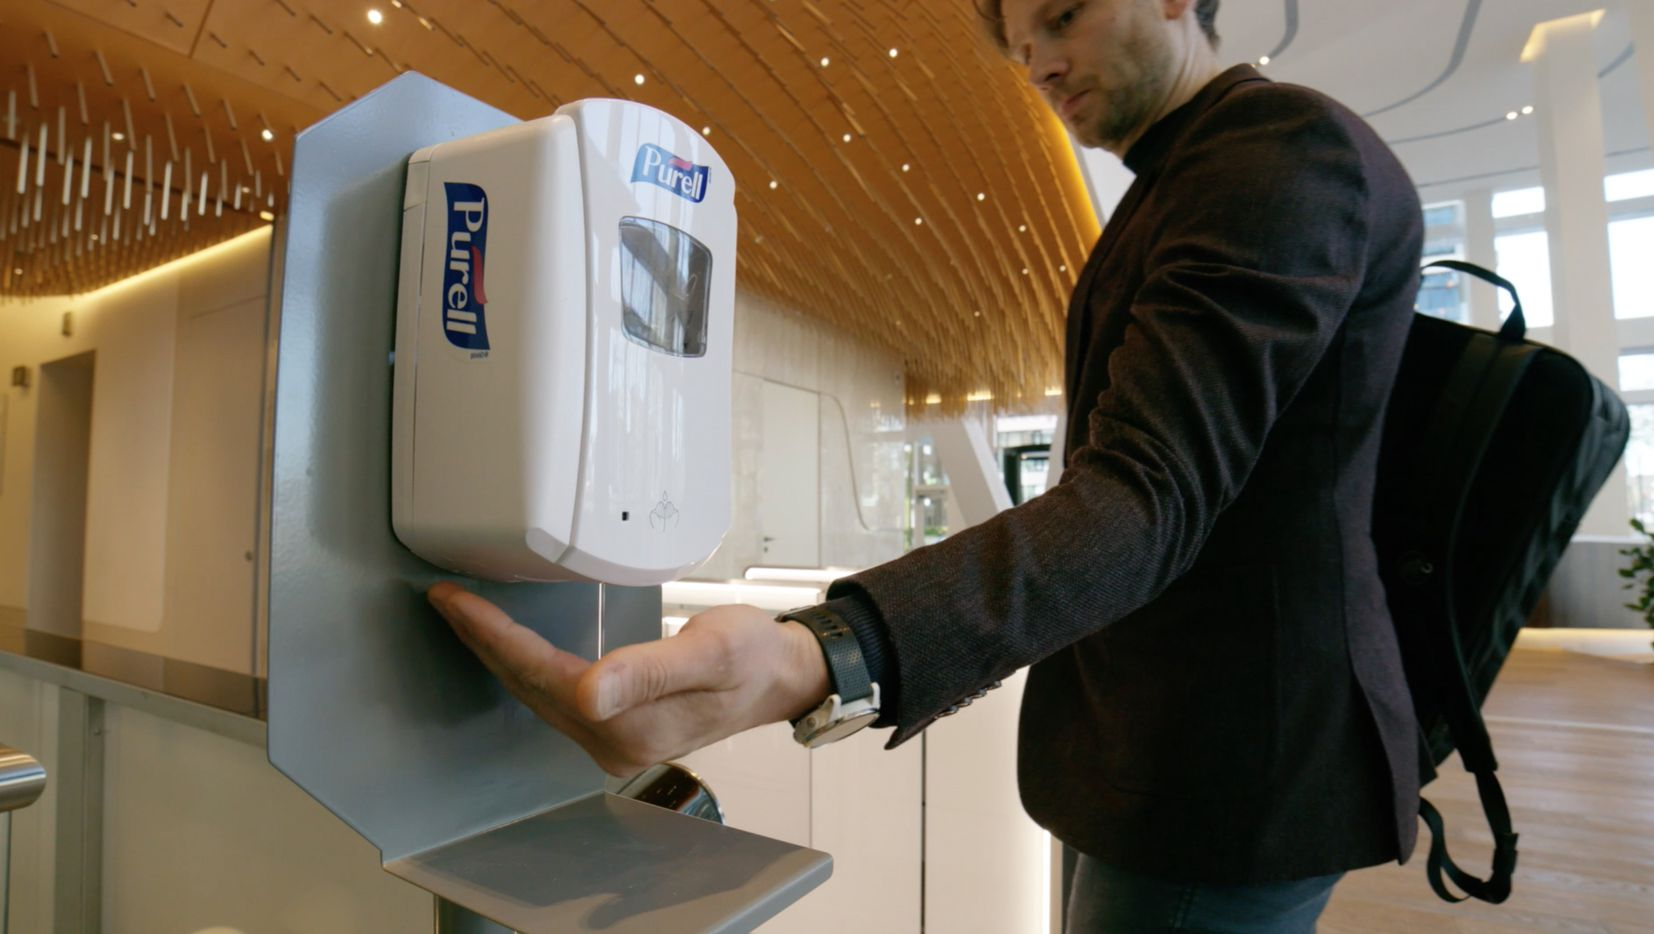 Hand sanitizer dispensers are the new must-have office feature.